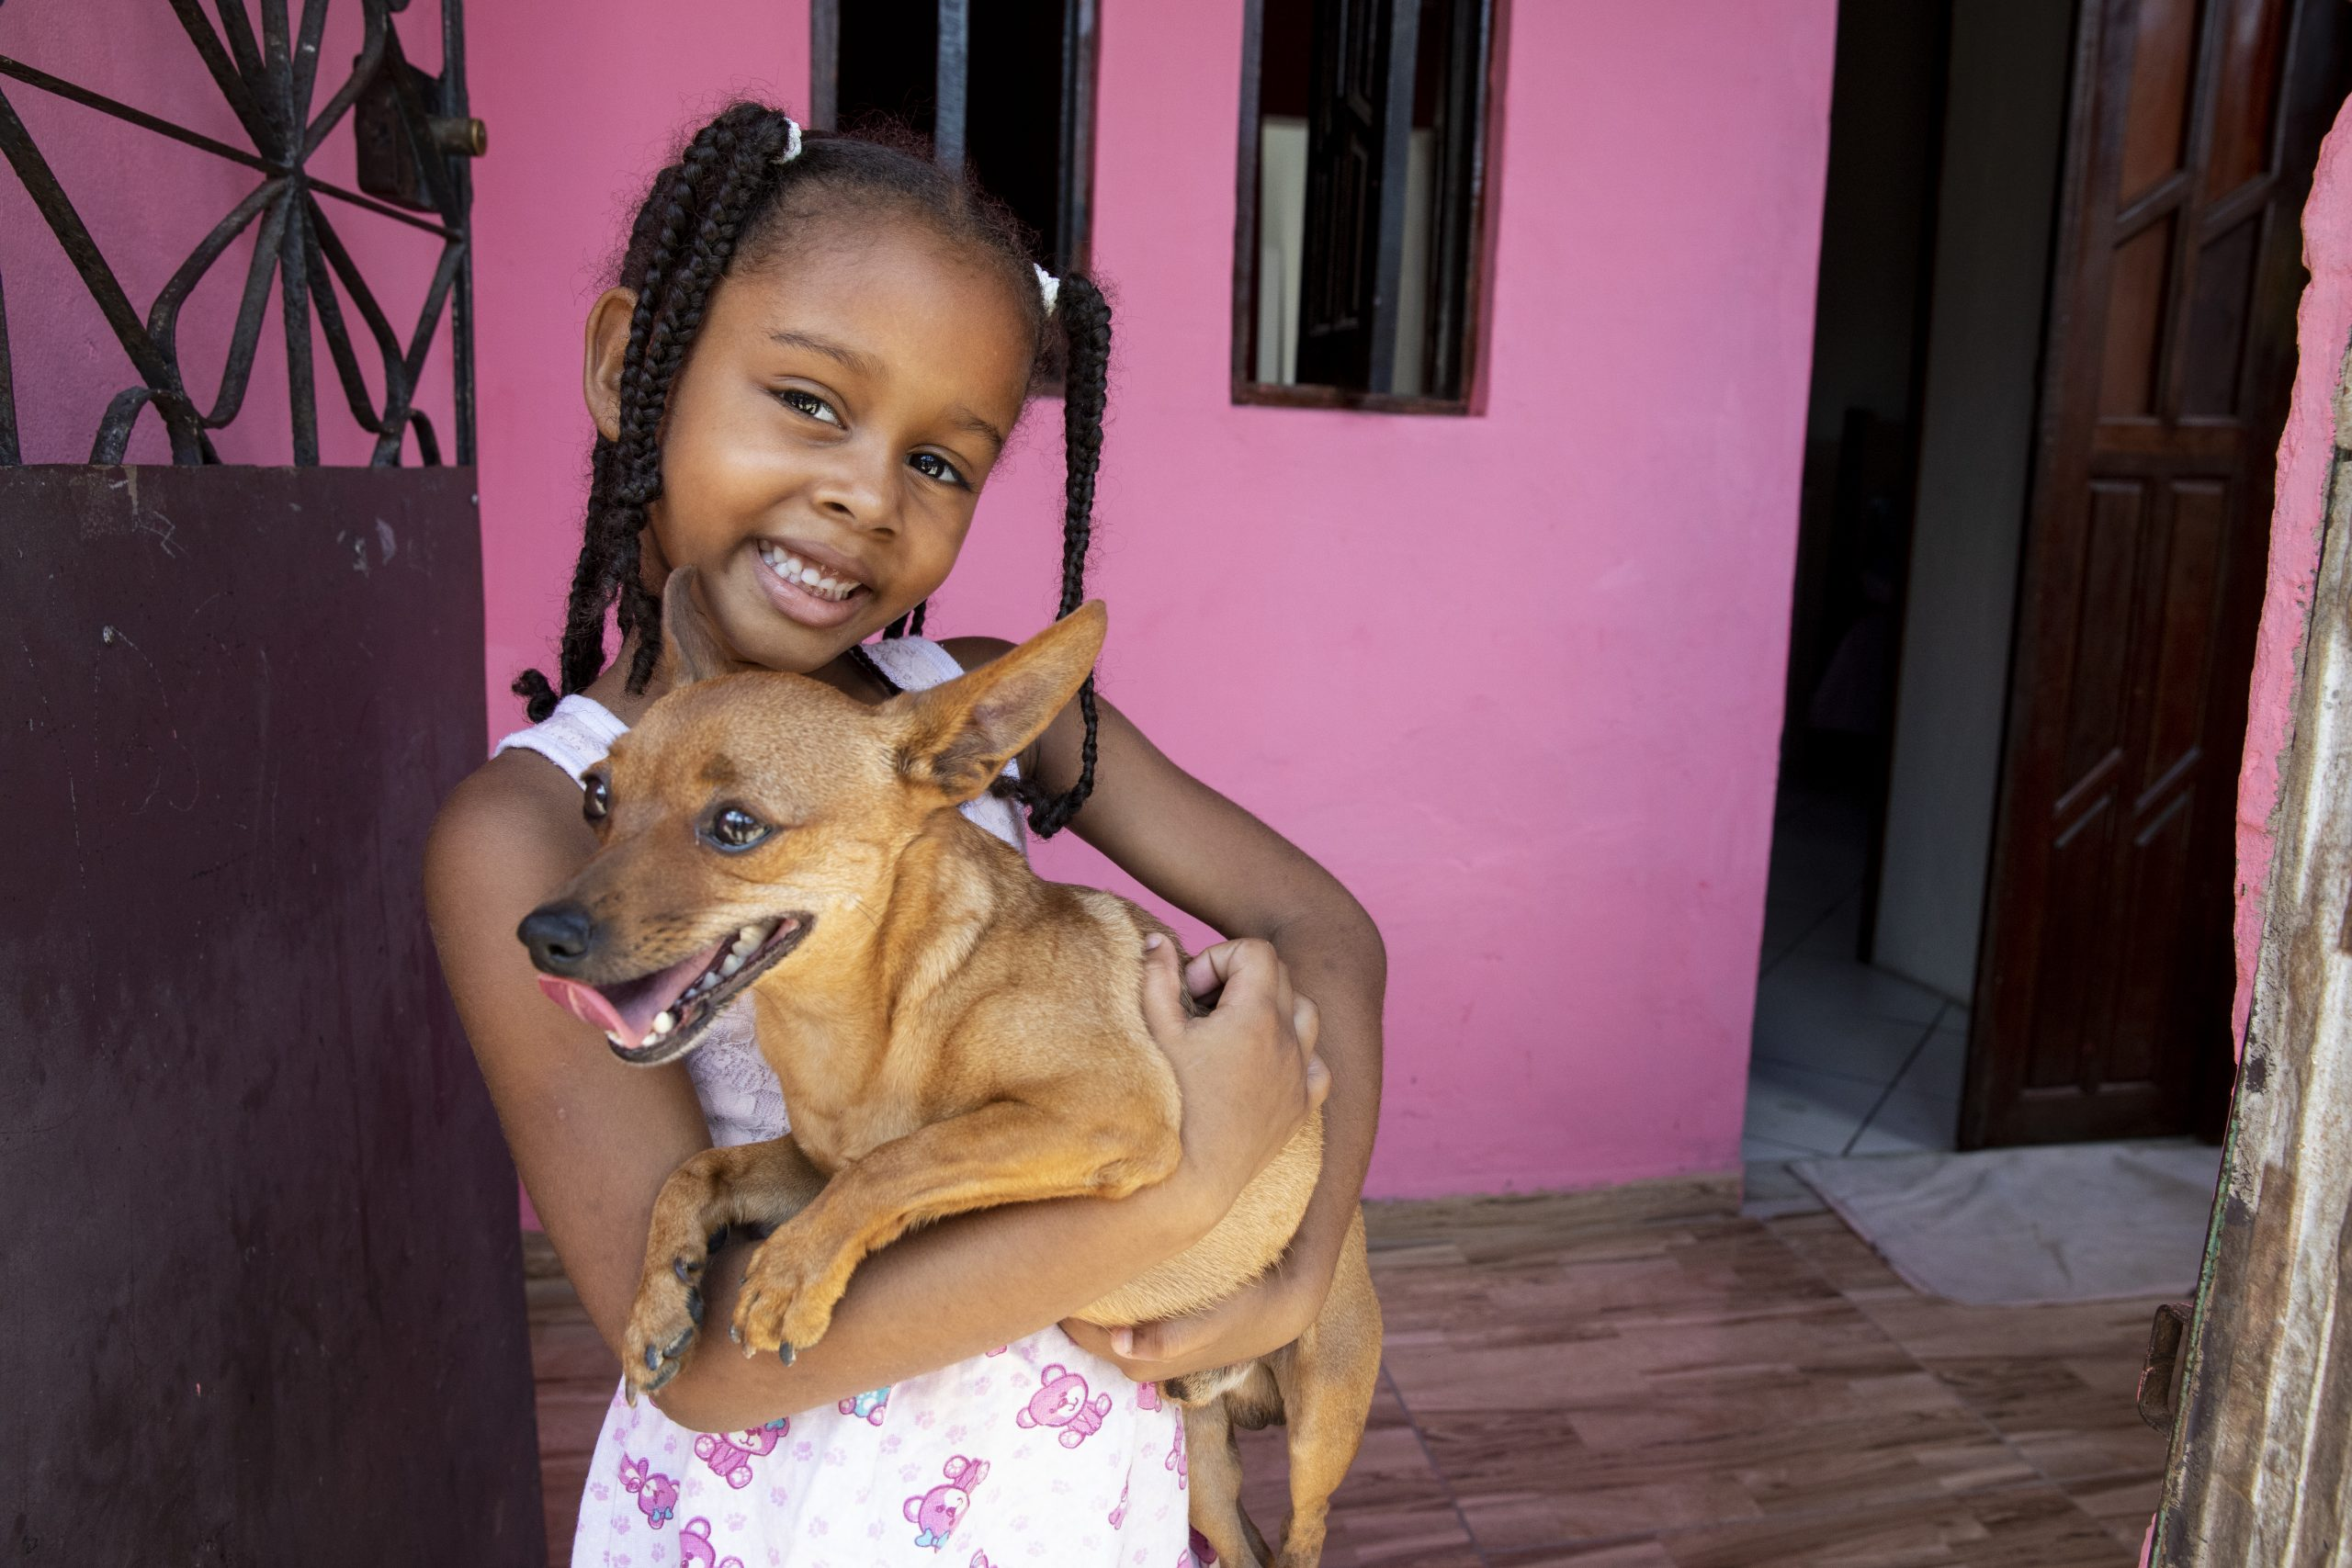 VILA ESPERANCA, CANDEIAS, BAHAI, BRAZIL (01/31/19)- Alice, 5, stands on the front porch of the house she shares with her family. Her parents, Danielo and Adriana da Silvia, partnered with Habitat for Humanity Brazil to renovate their home.  © Habitat for Humanity International/Jason Asteros